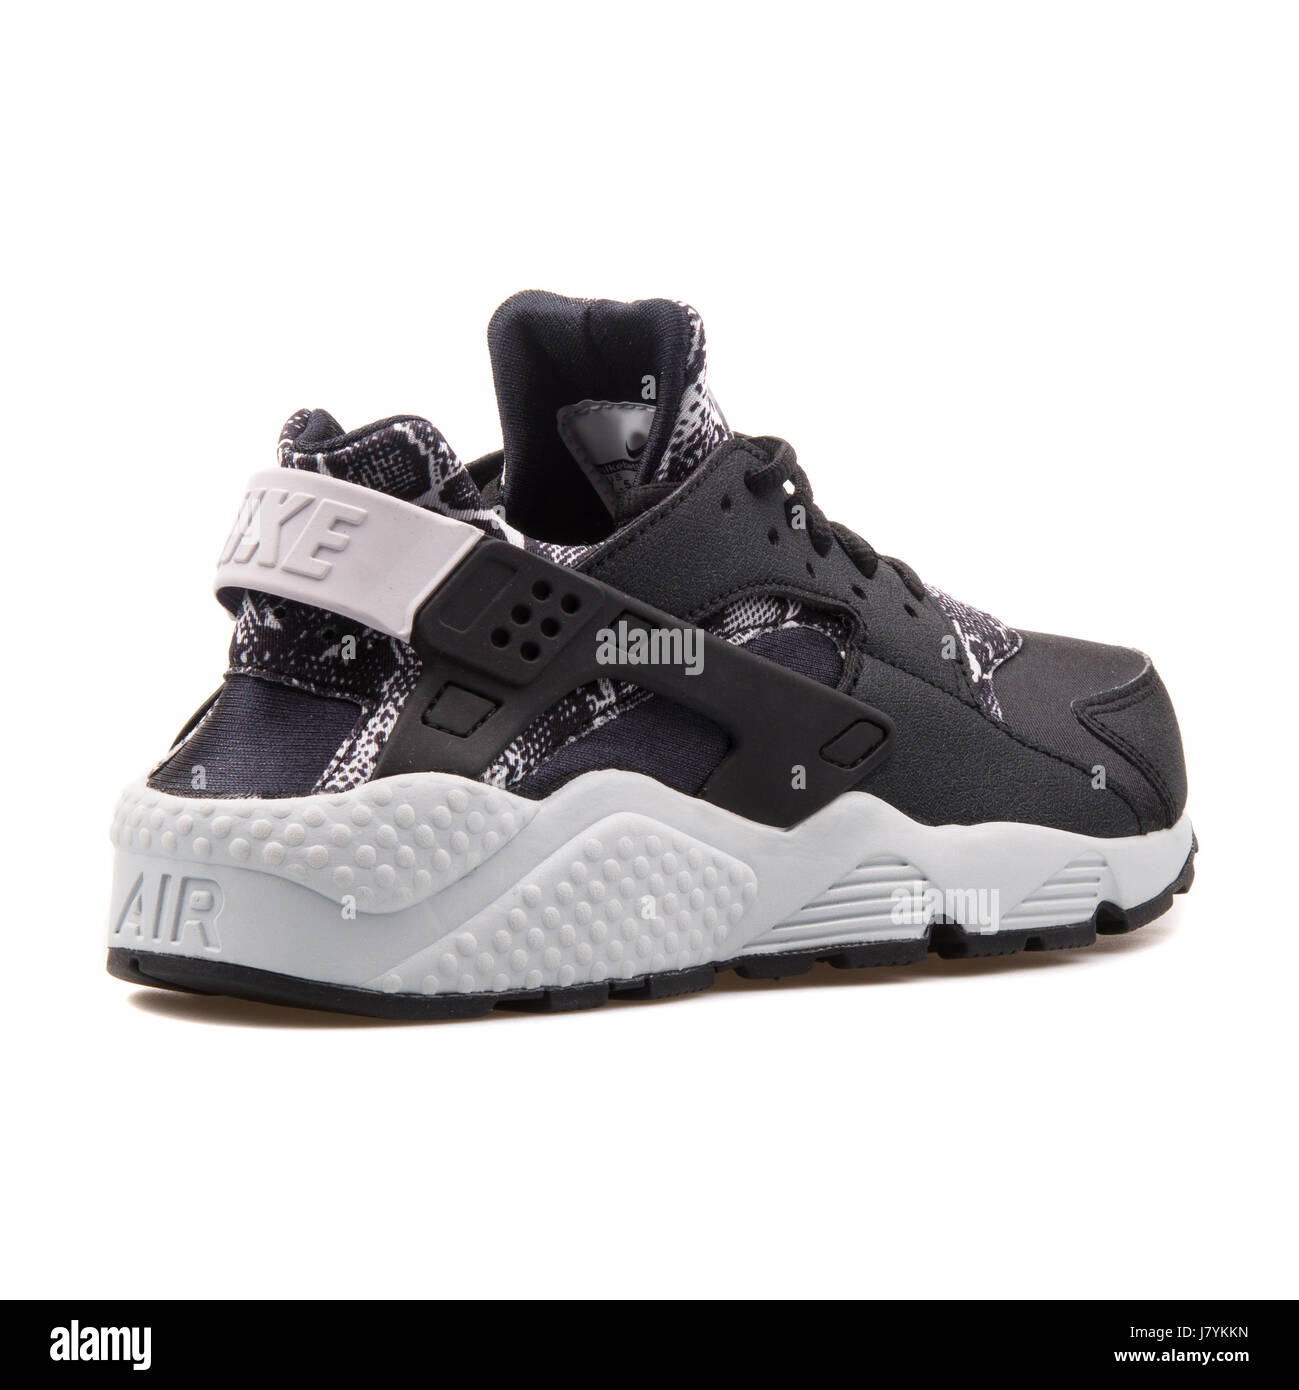 15ae0e320117 Nike WMNS Air Huarache Run Print Women s Black Running Sneakers - 725076-002